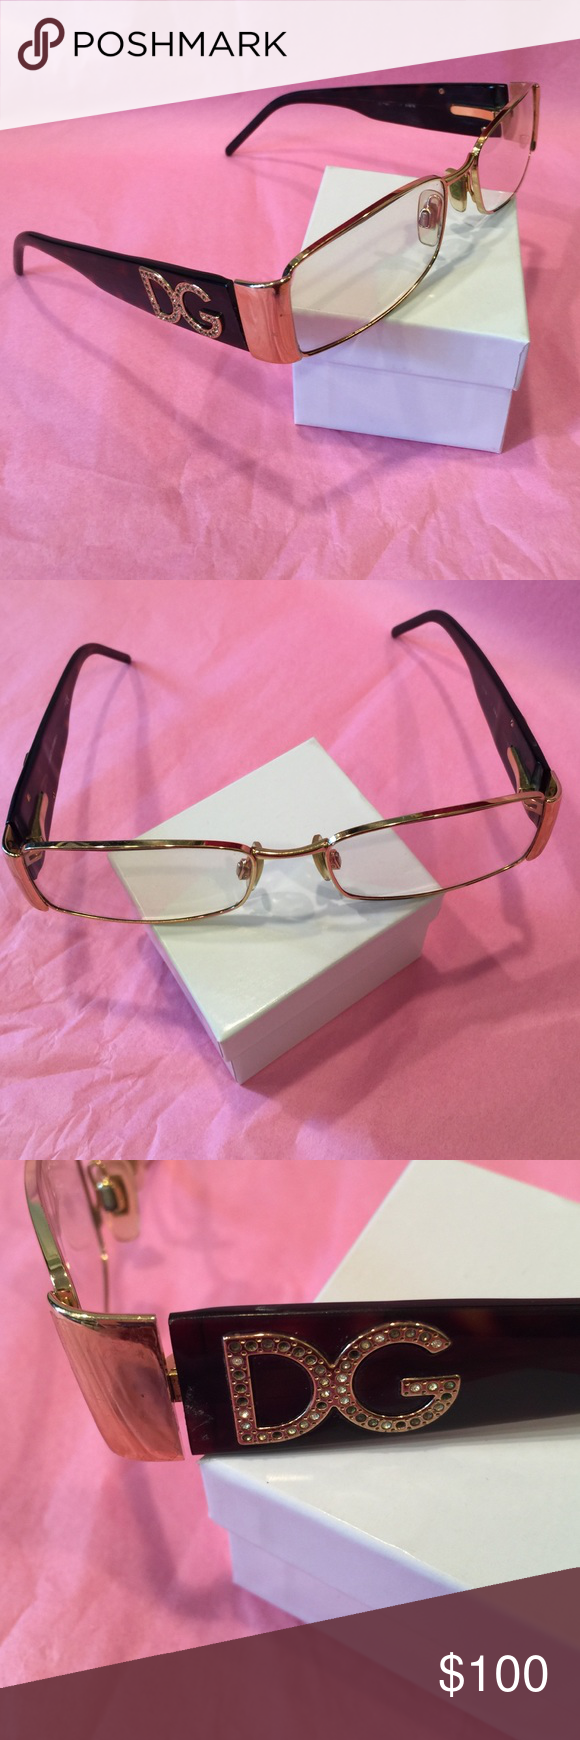 DOLCE & GABBANA AUTHENTIC FRAME Authentic DOLCE And GABBANA eyeglasses frame. Good conditions. Dolce & Gabbana Accessories Glasses